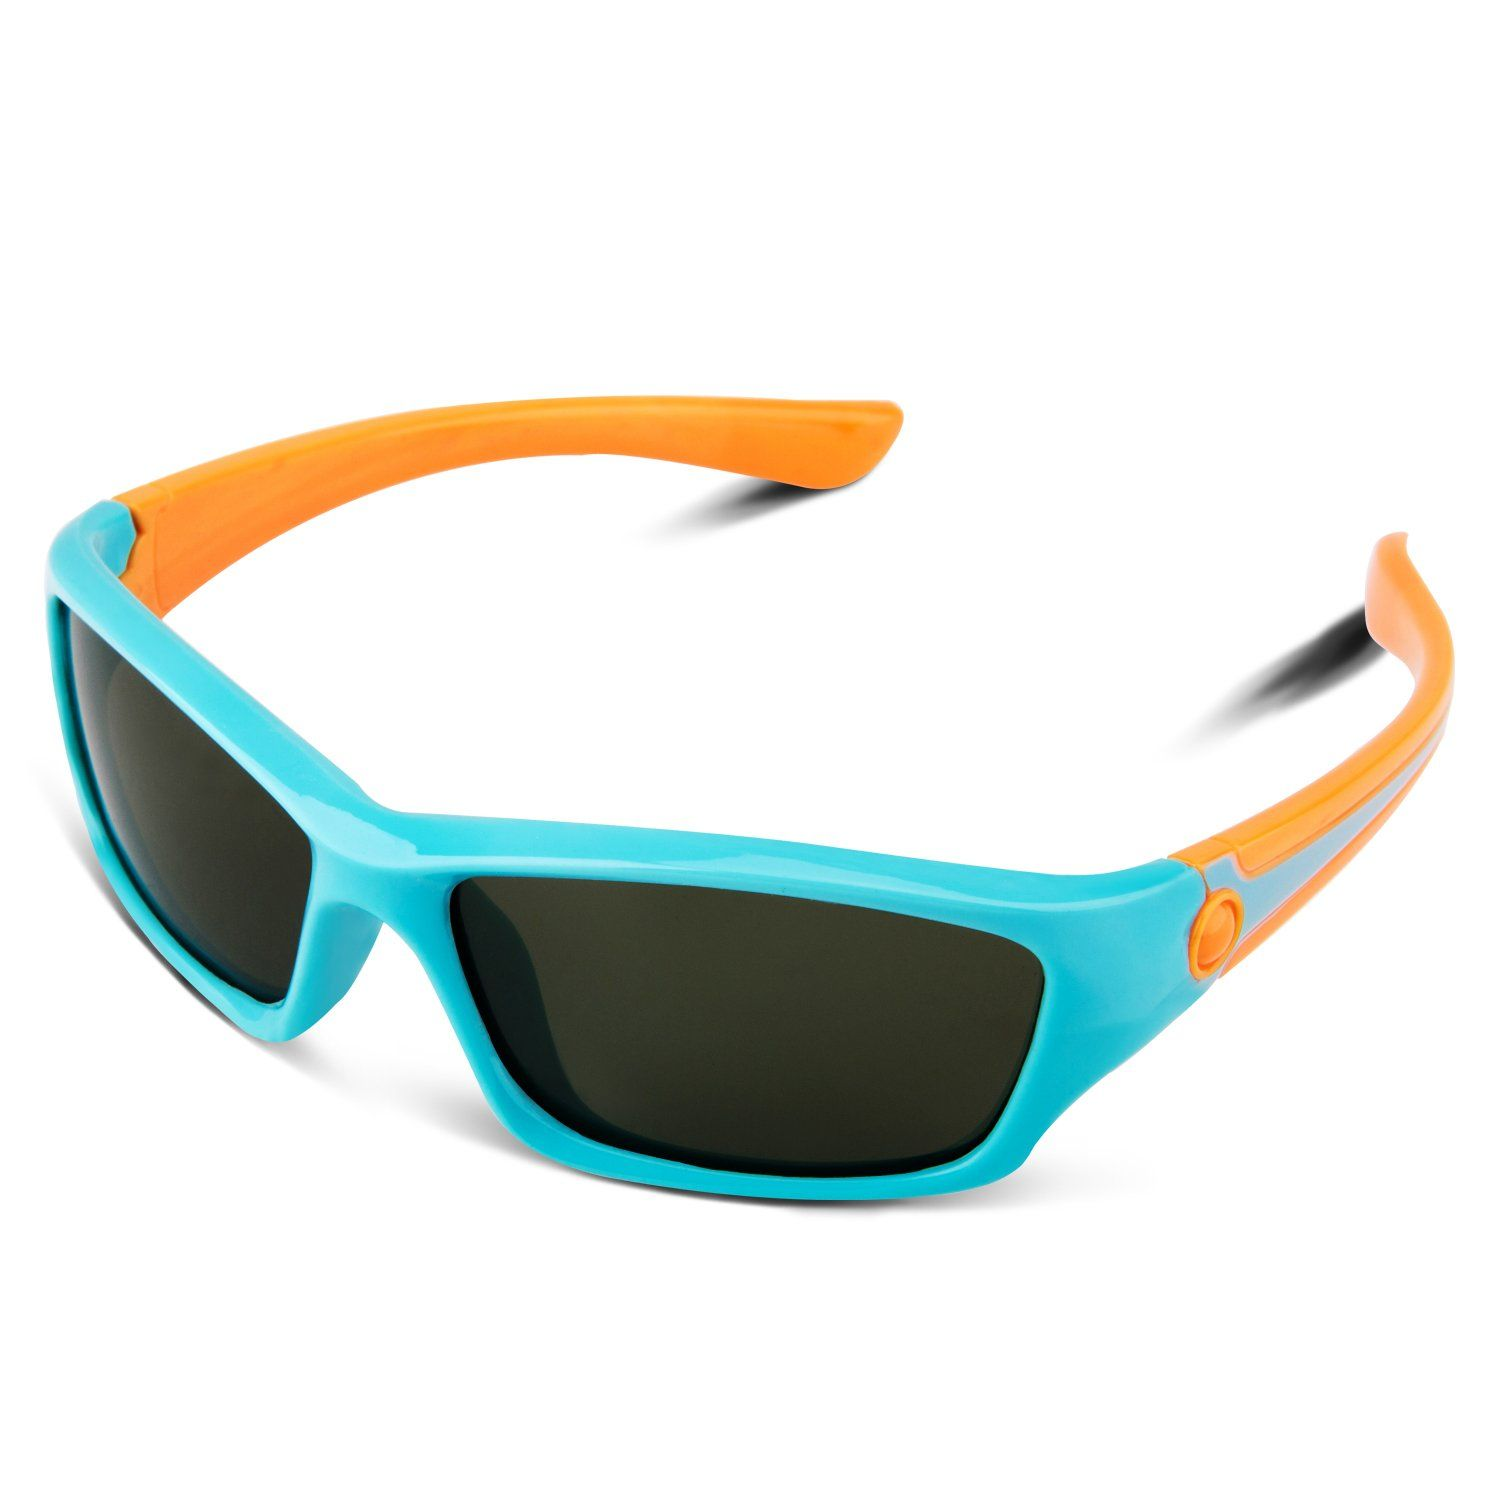 ddeee717e37 RIVBOS RBK025 Rubber Flexible Kids Polarized Sunglasses Glasses Age 3-10  (Blue). SOFT SILICON AND UNBREAKABLE MATERIALS- RIVBOS always walks at the  ...